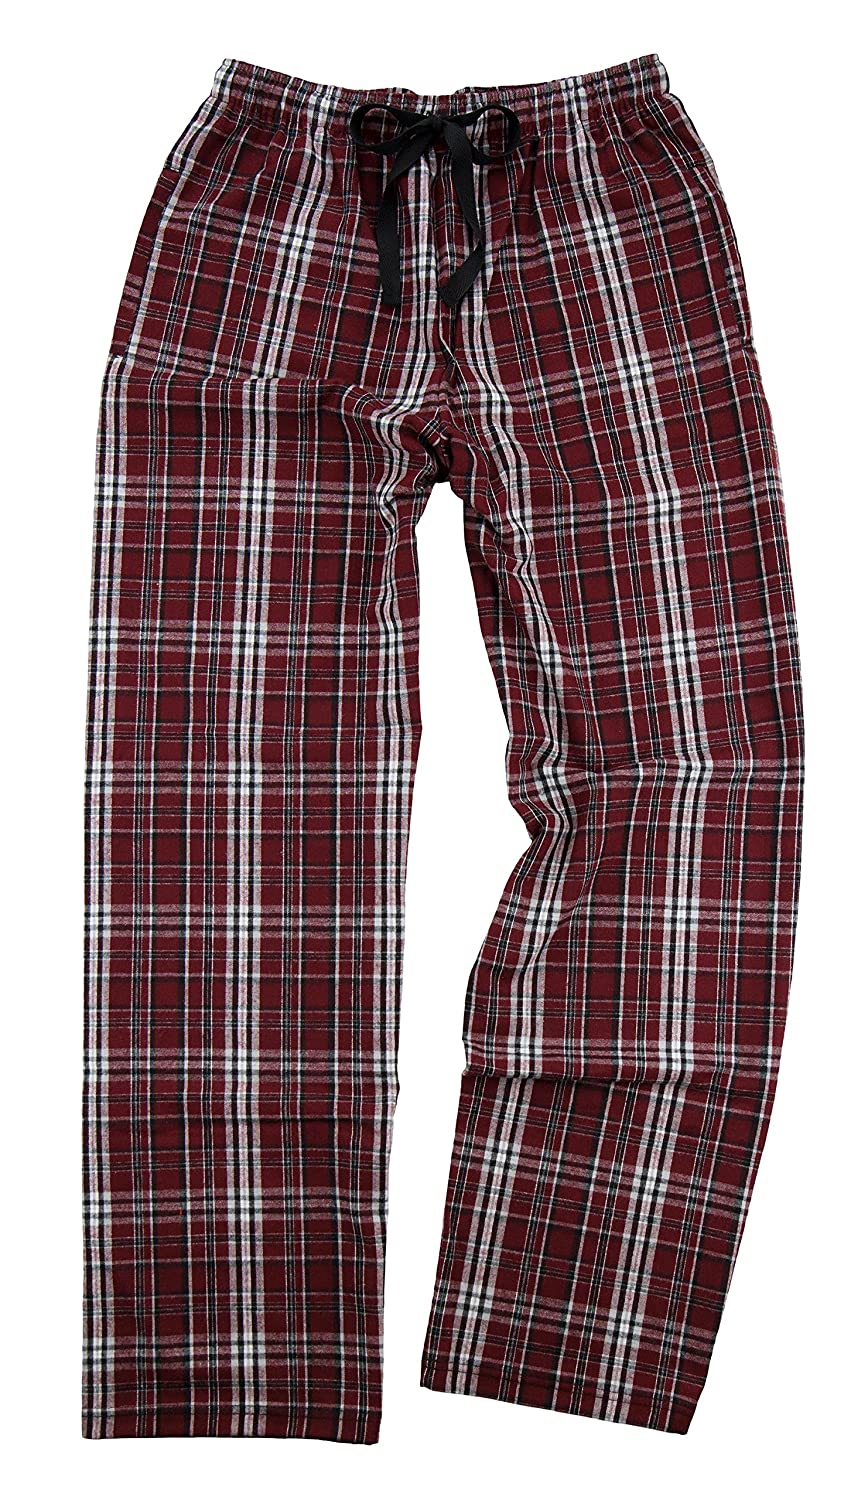 HTC Set: Boxercraft Flannel Pant and HTC Care Guide, Youth Sizes HTC_YF20_BOYSv1